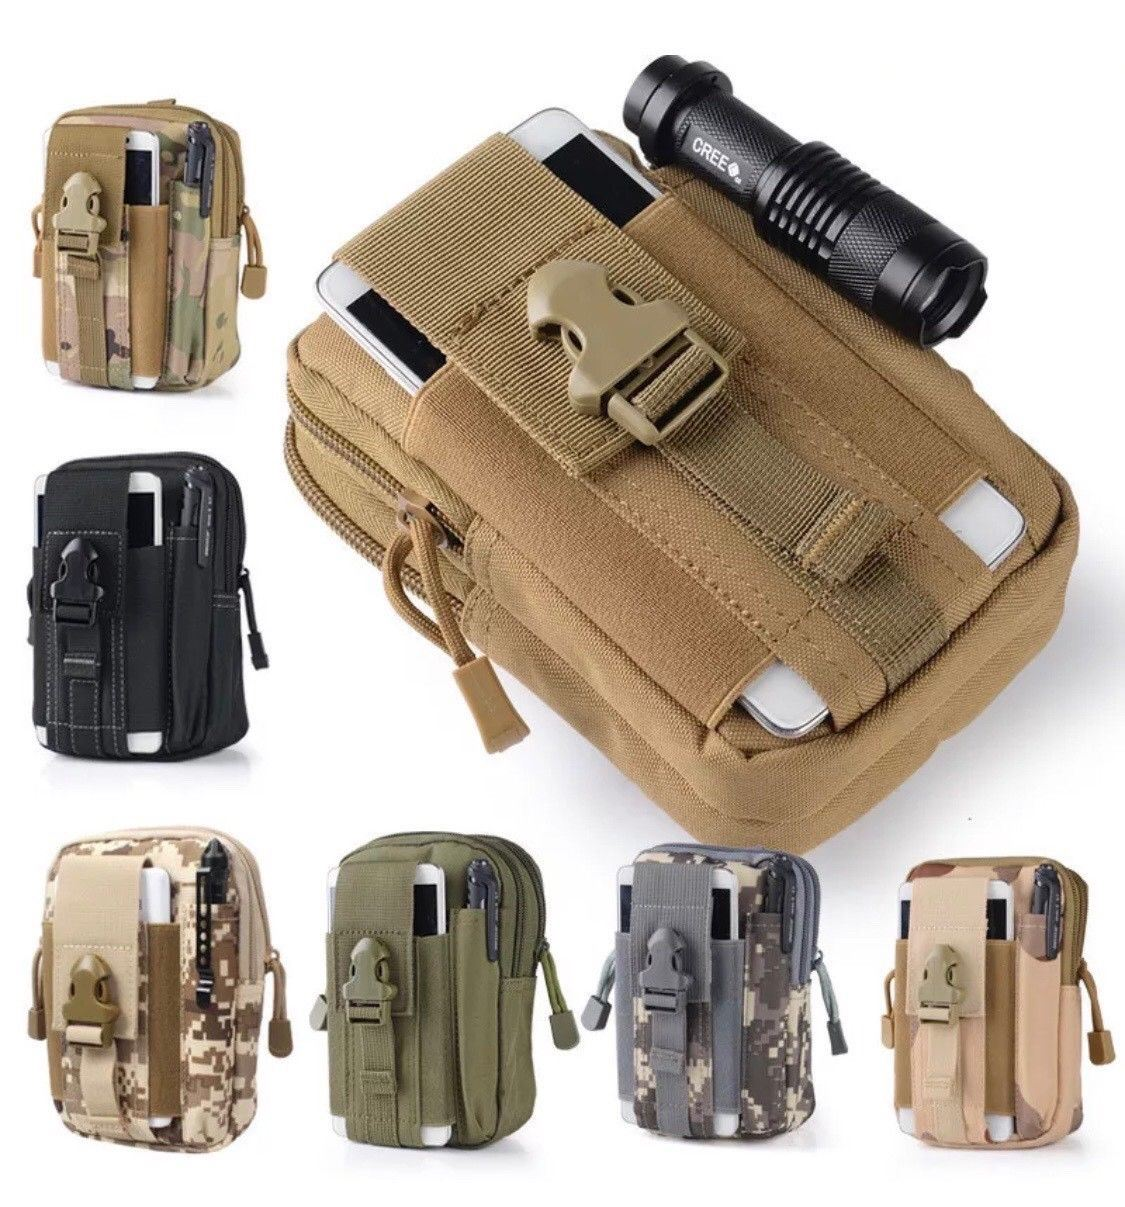 EDC Survival Multi Tool Combo Kit With Green   Camo Belt Pouch - Outback Tactical